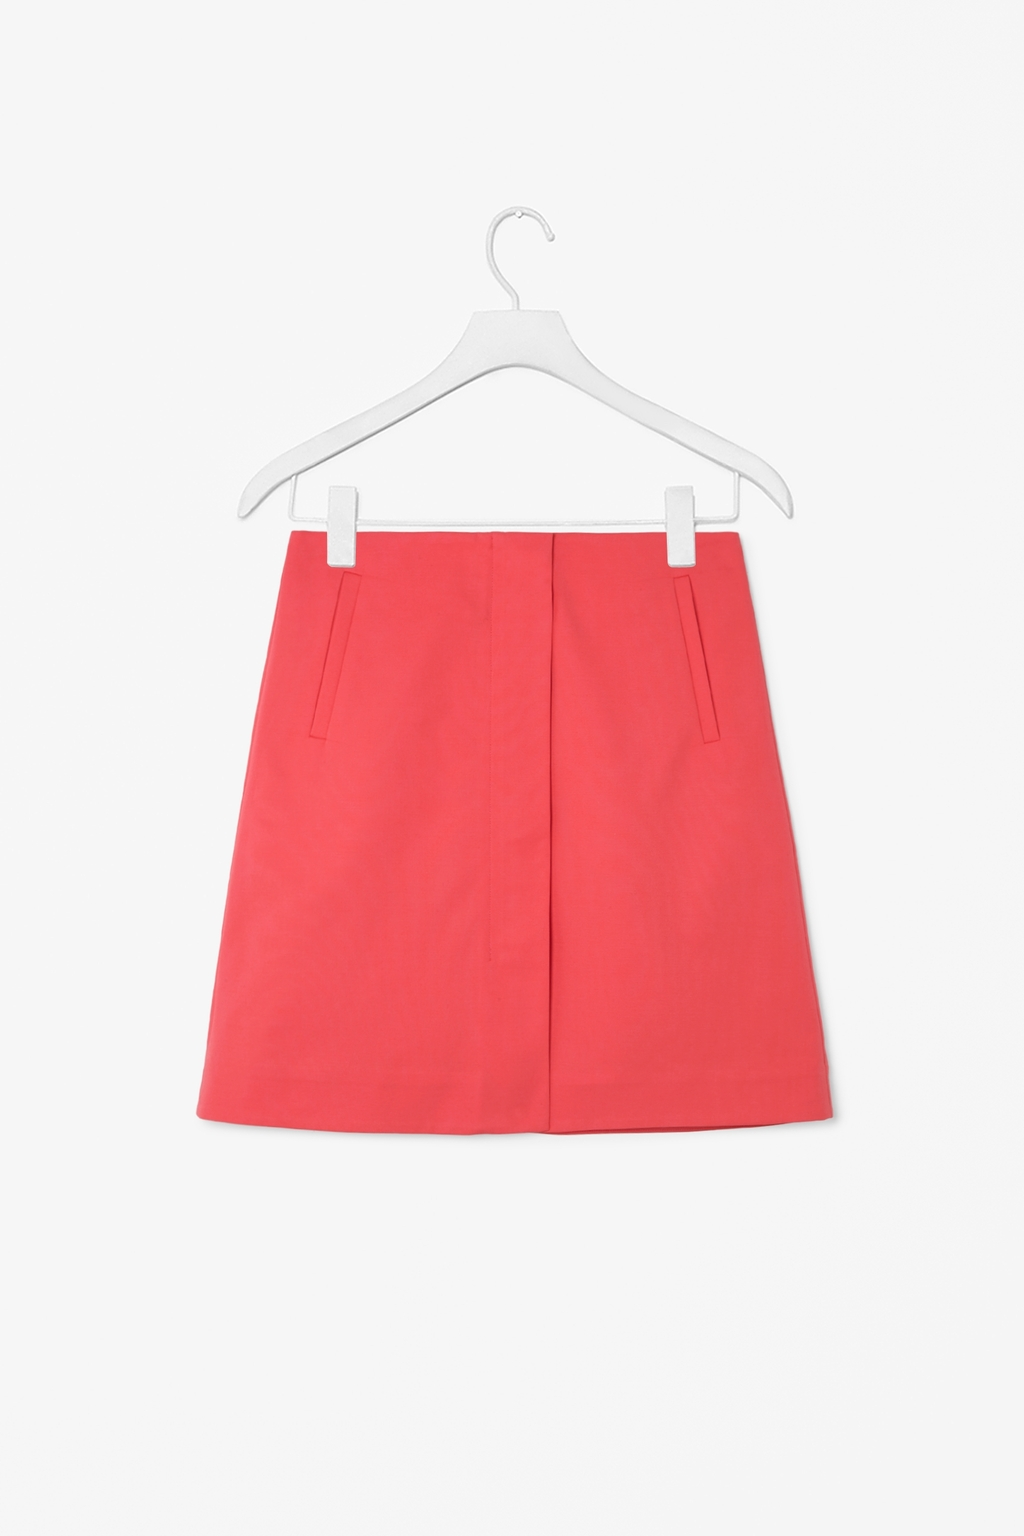 Skirt With Front Zip - pattern: plain; fit: loose/voluminous; waist: mid/regular rise; predominant colour: coral; occasions: casual, creative work; length: just above the knee; style: a-line; fibres: cotton - stretch; texture group: cotton feel fabrics; pattern type: fabric; season: s/s 2014